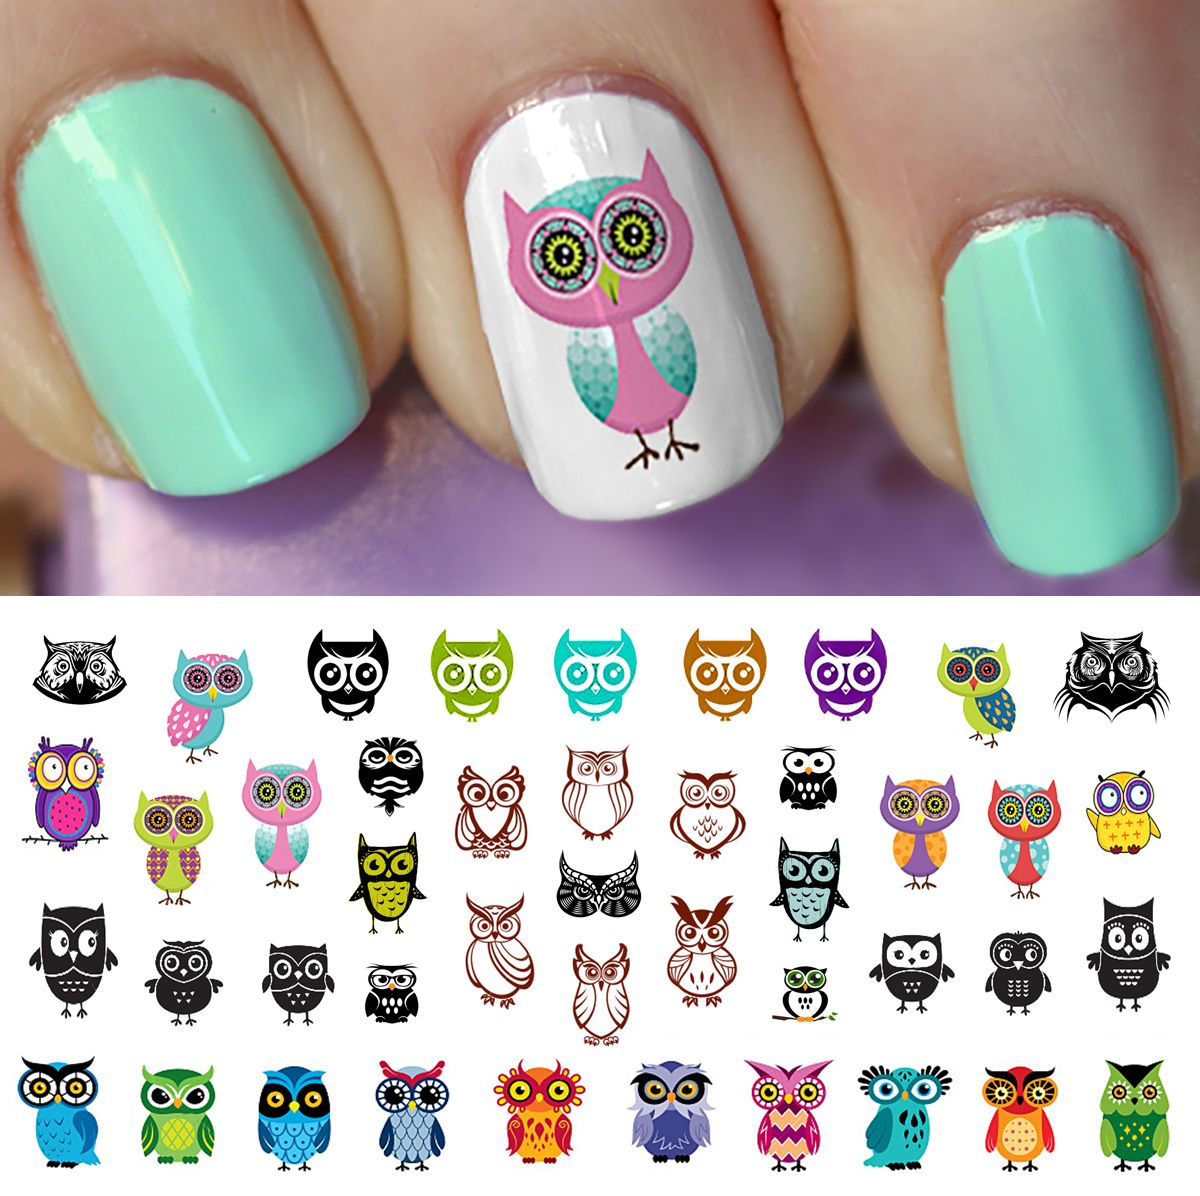 Owl nail art from www.moonsugardecals.com | Owl Nail Art Decals ...